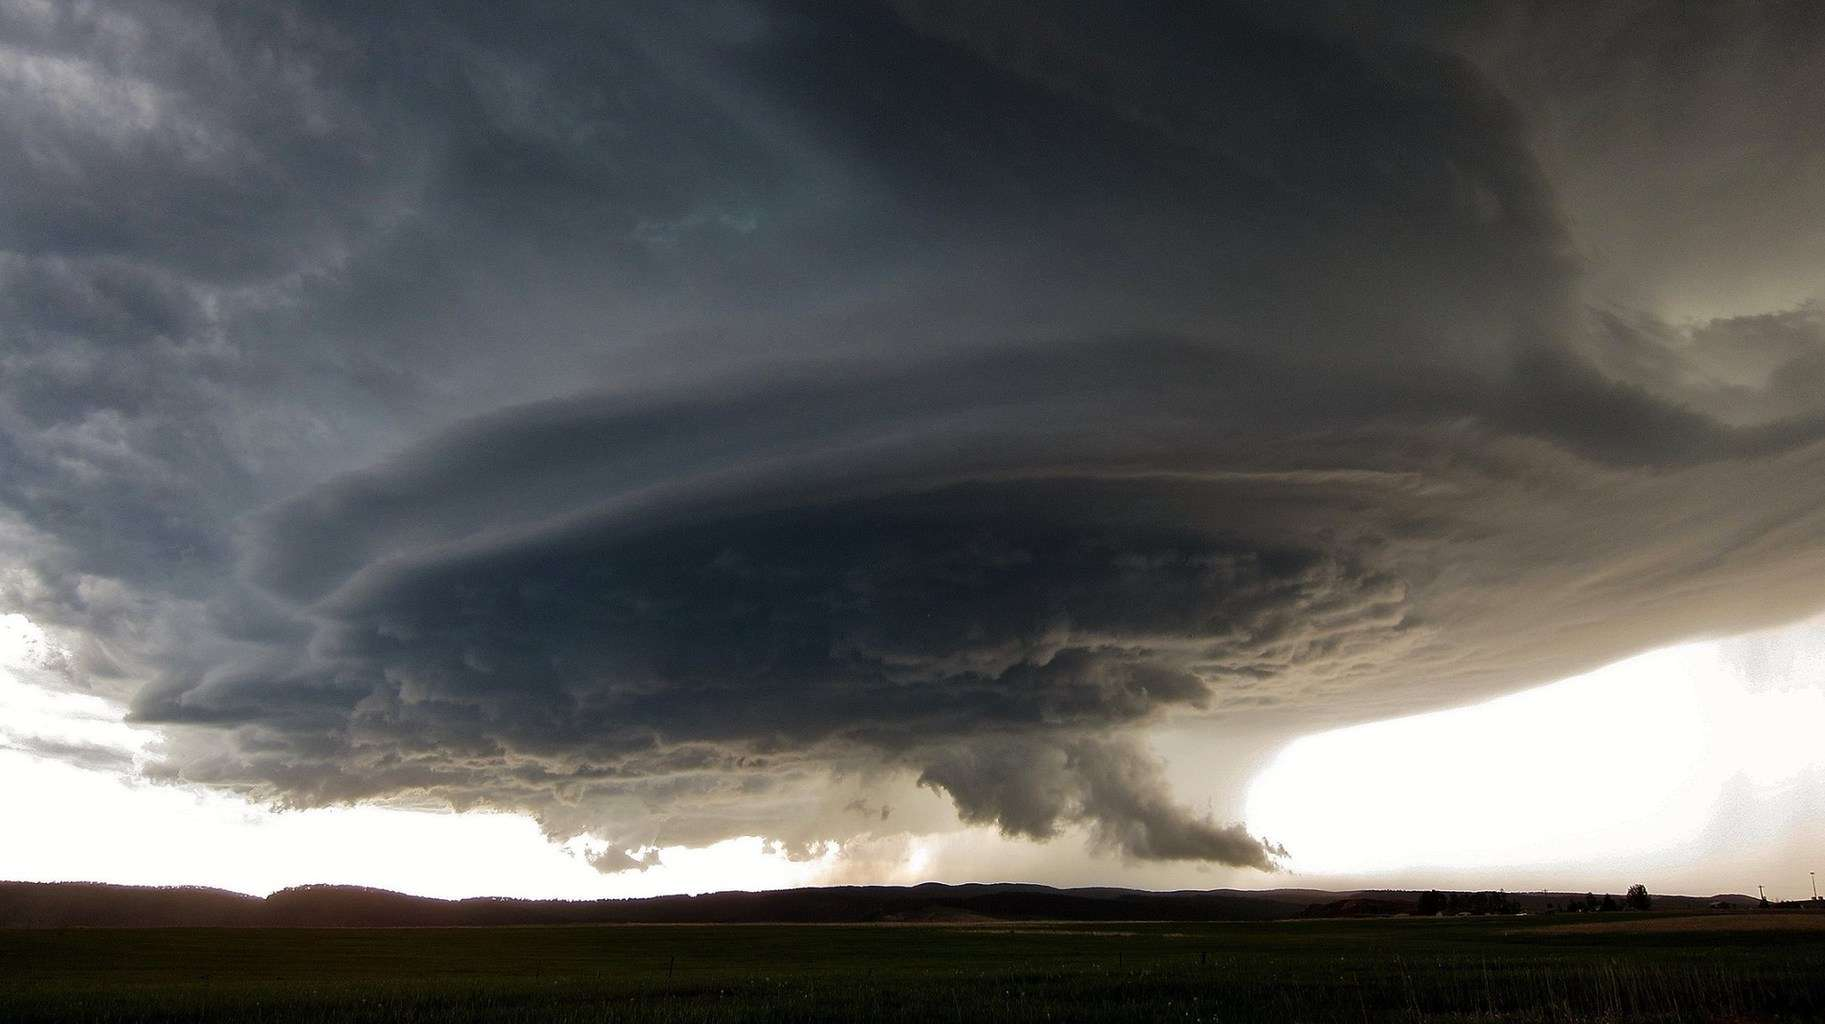 """Mothership"" supercell. An intense rotating storm outside Rapid City, SD on June 1, 2015. Incredible structure!"